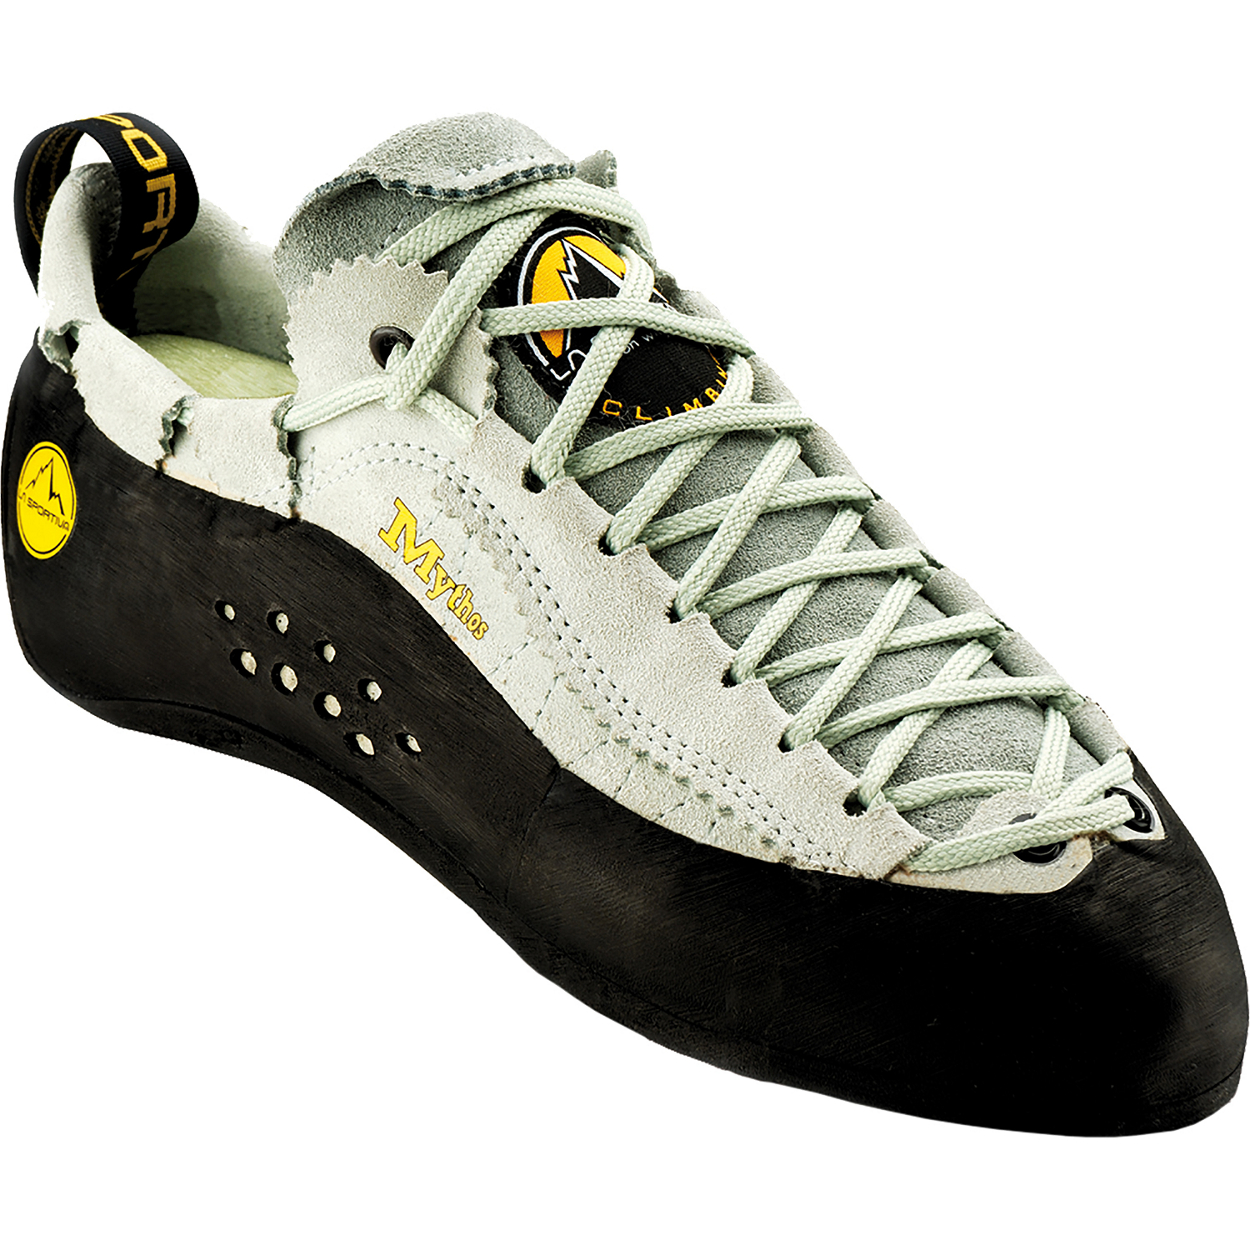 Mythos Climbing Shoes Review